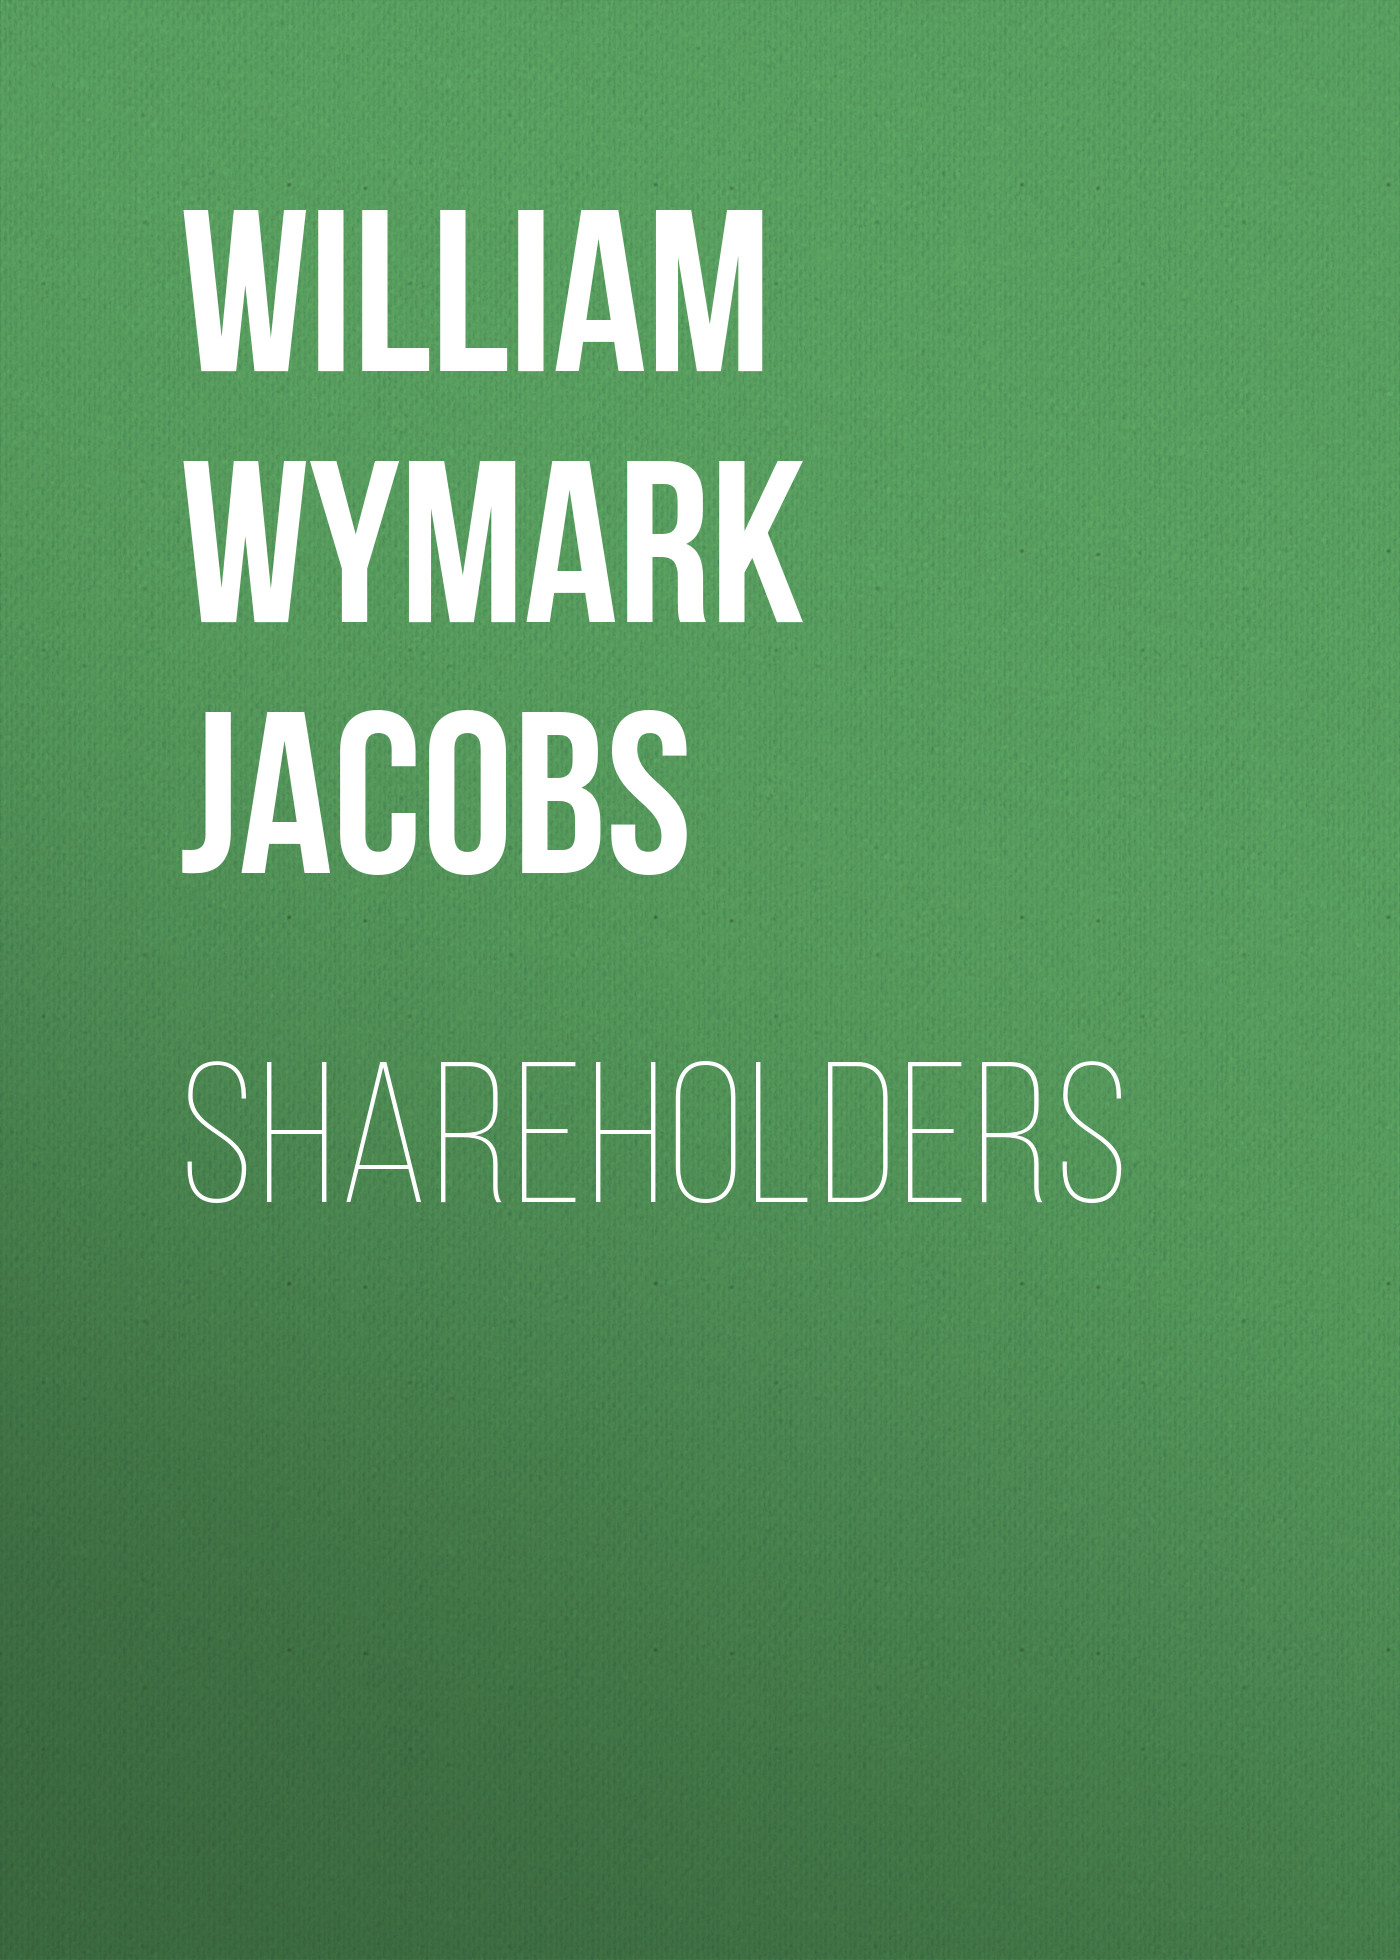 William Wymark Jacobs Shareholders william wymark jacobs breaking a spell